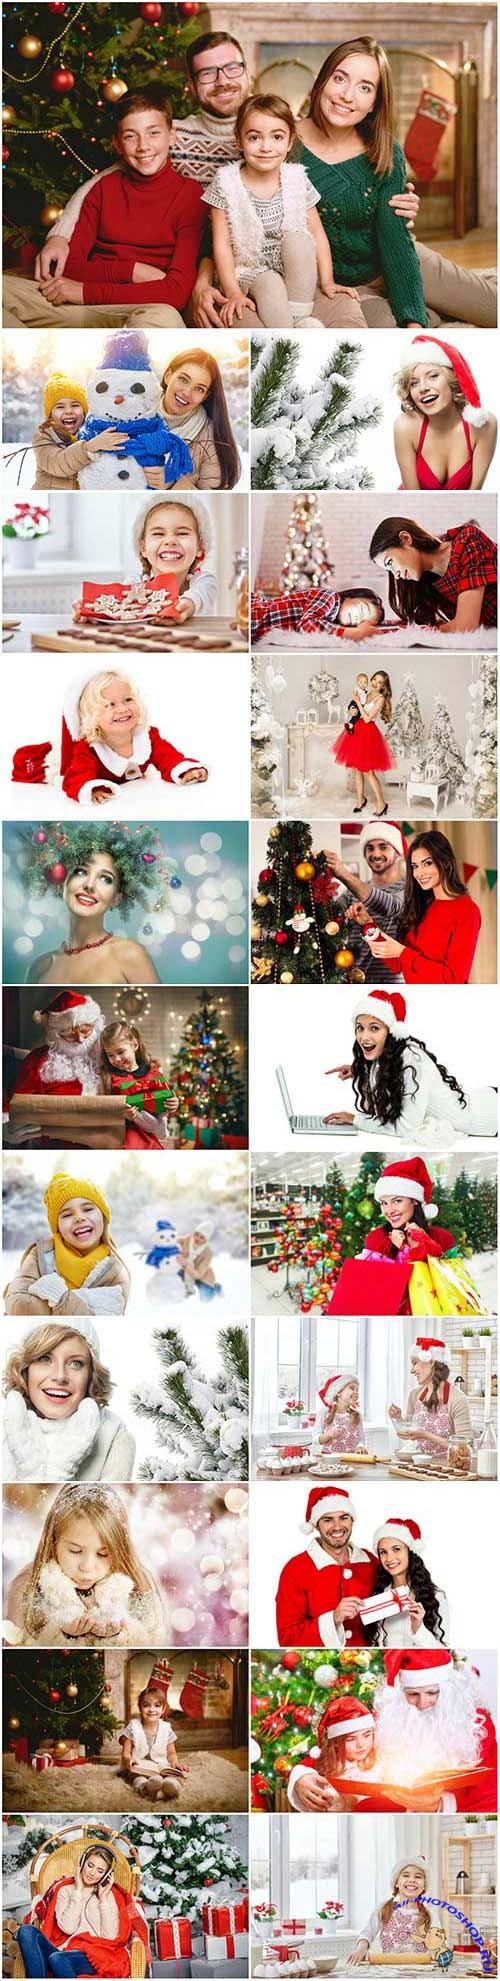 New Year and Christmas stock photos 88